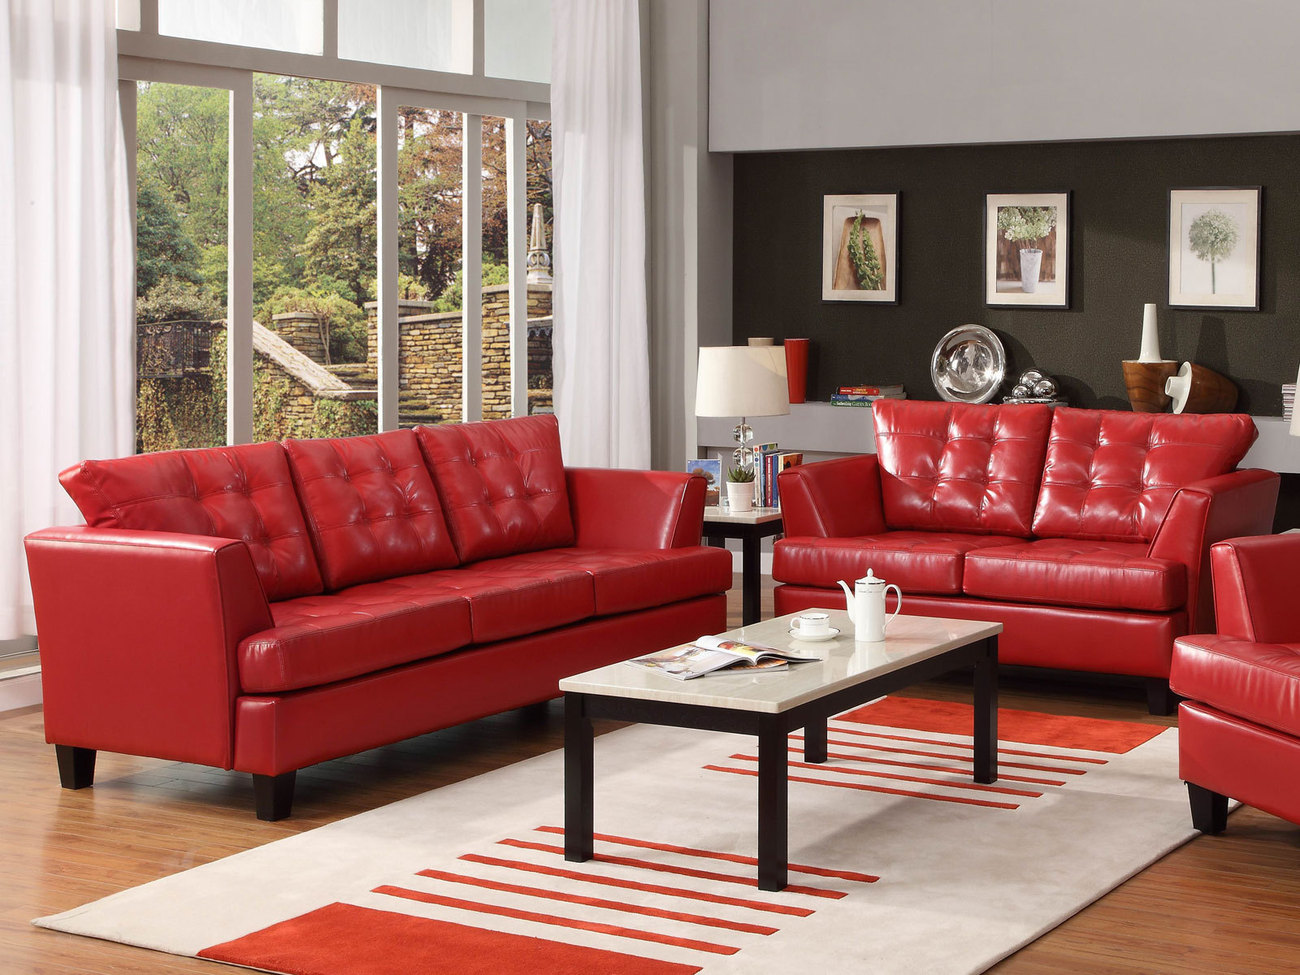 Red Furniture Ideas Red Living Room Ideas To Decorate Modern Living Room Sets